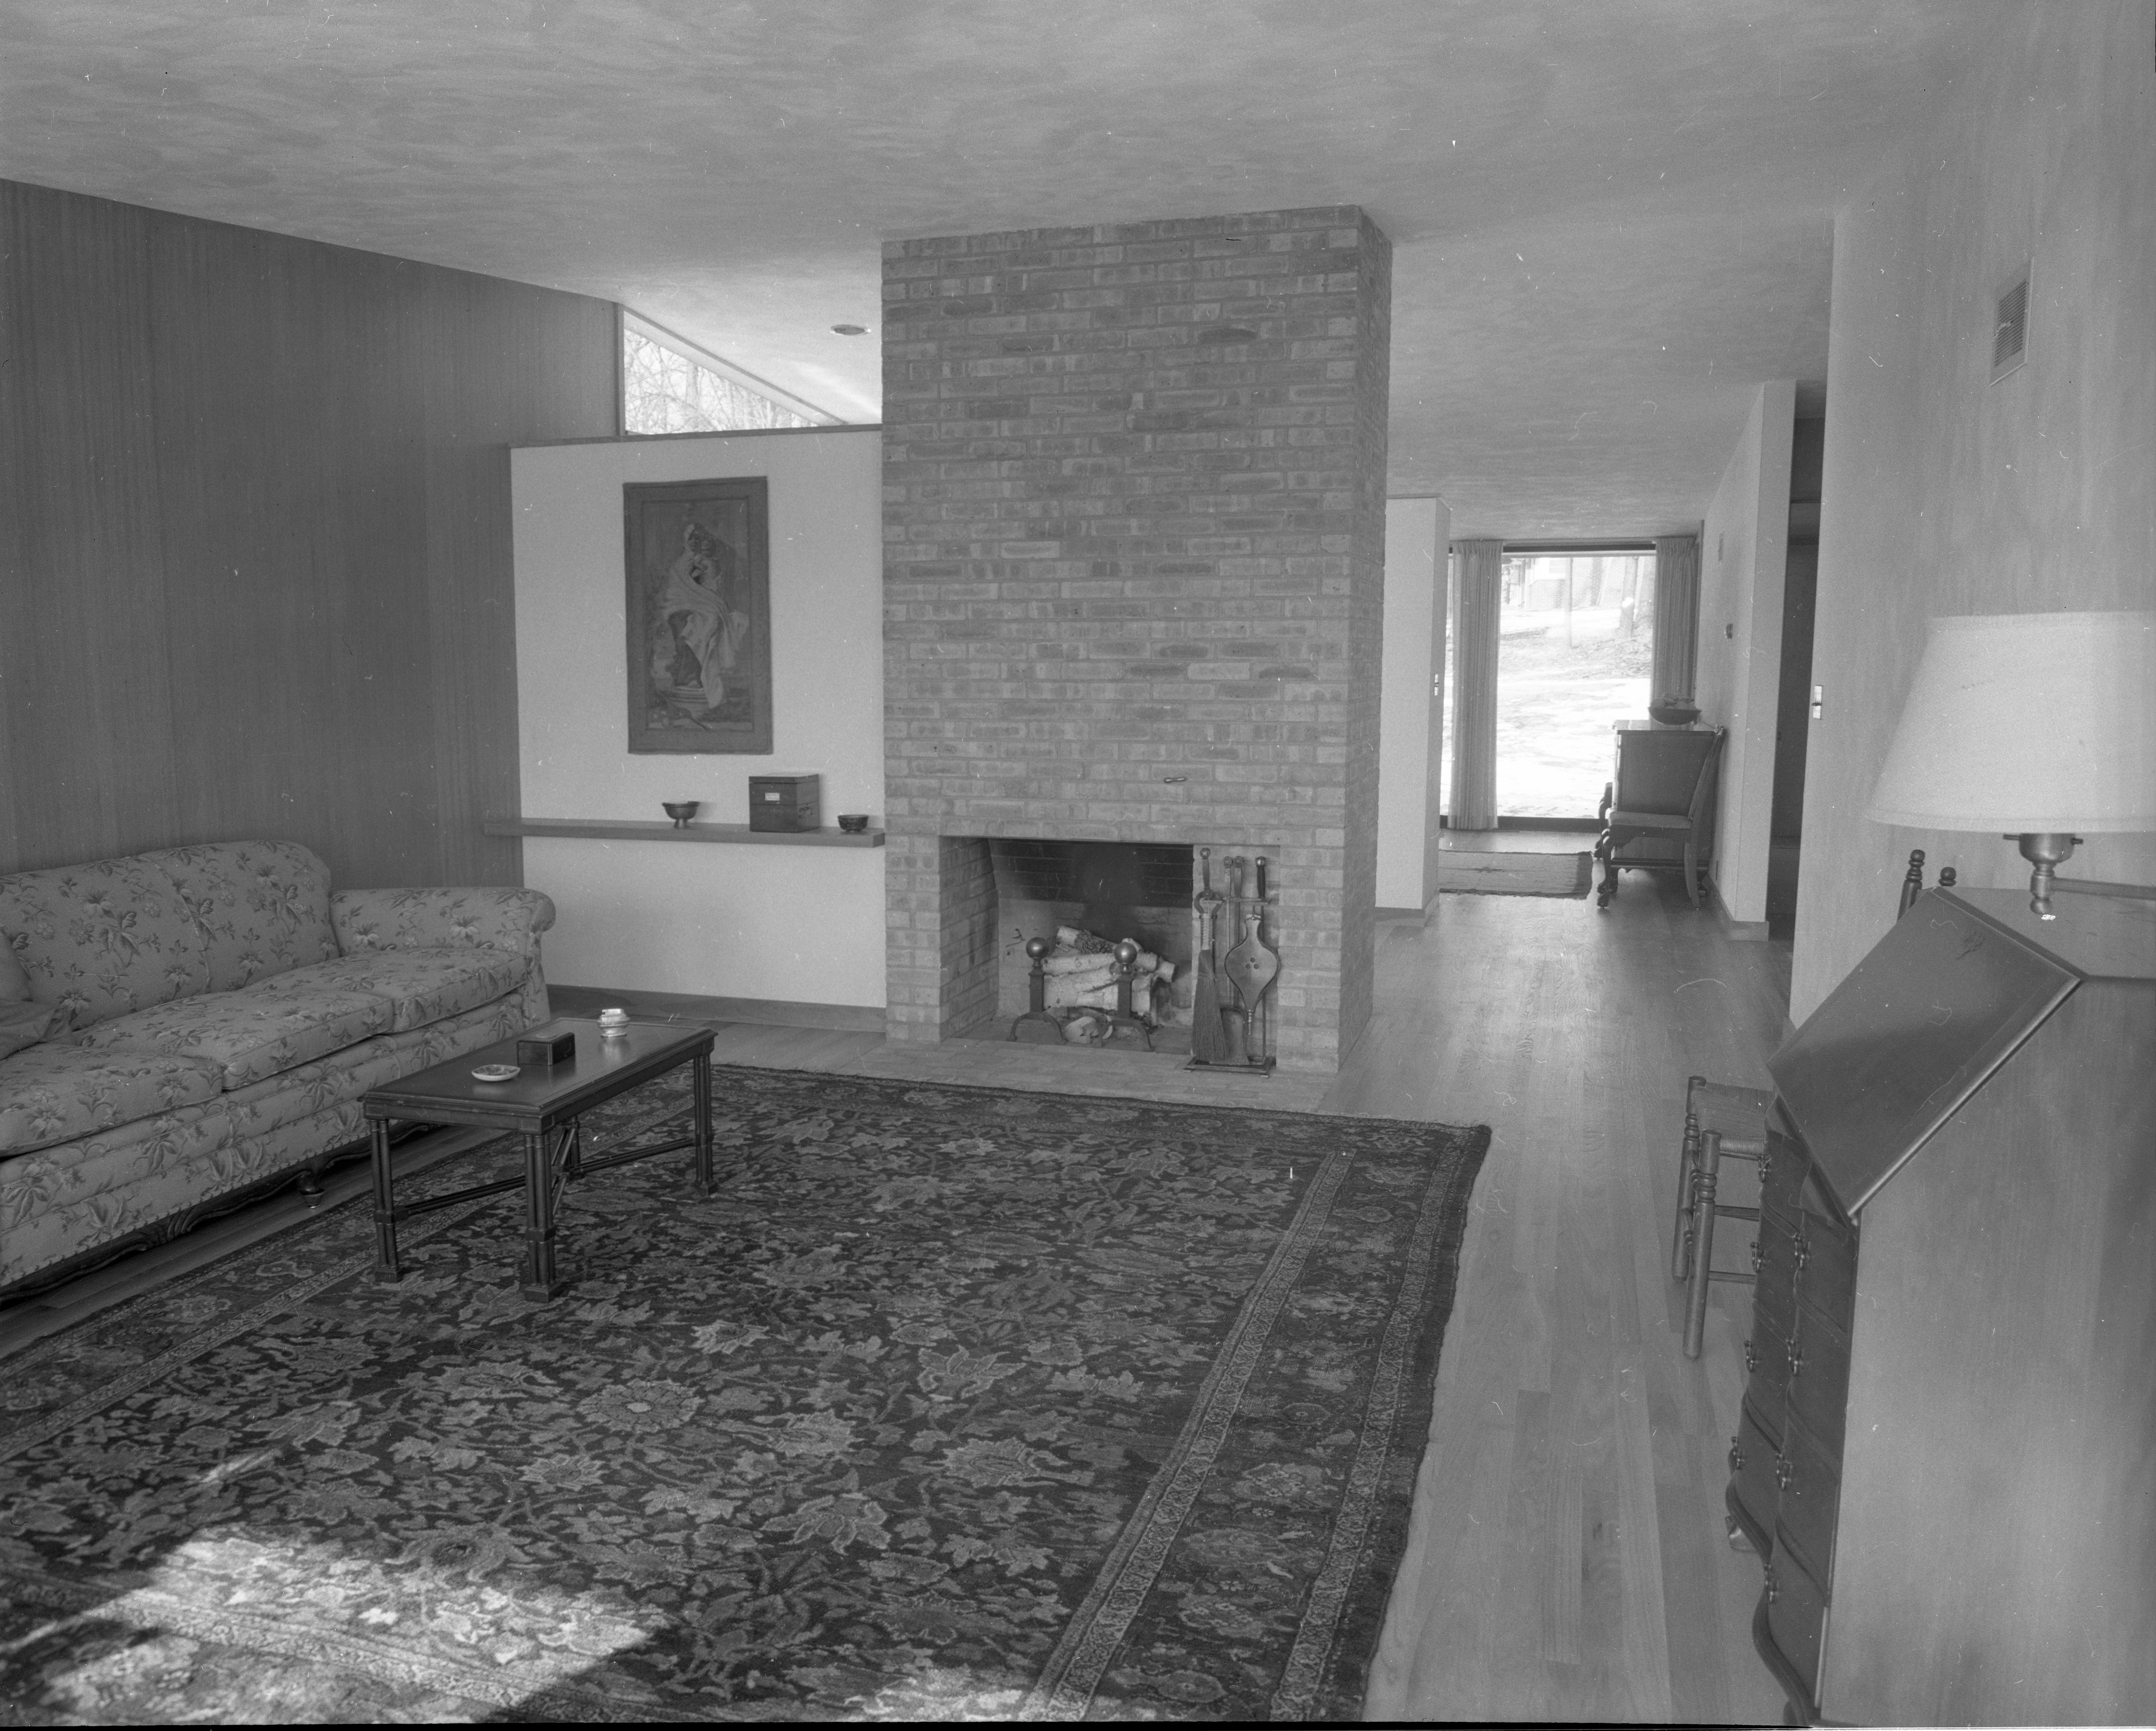 Metcalf Award-Winning Design Emphasizes Openness In Dennison Home, February 1955 image